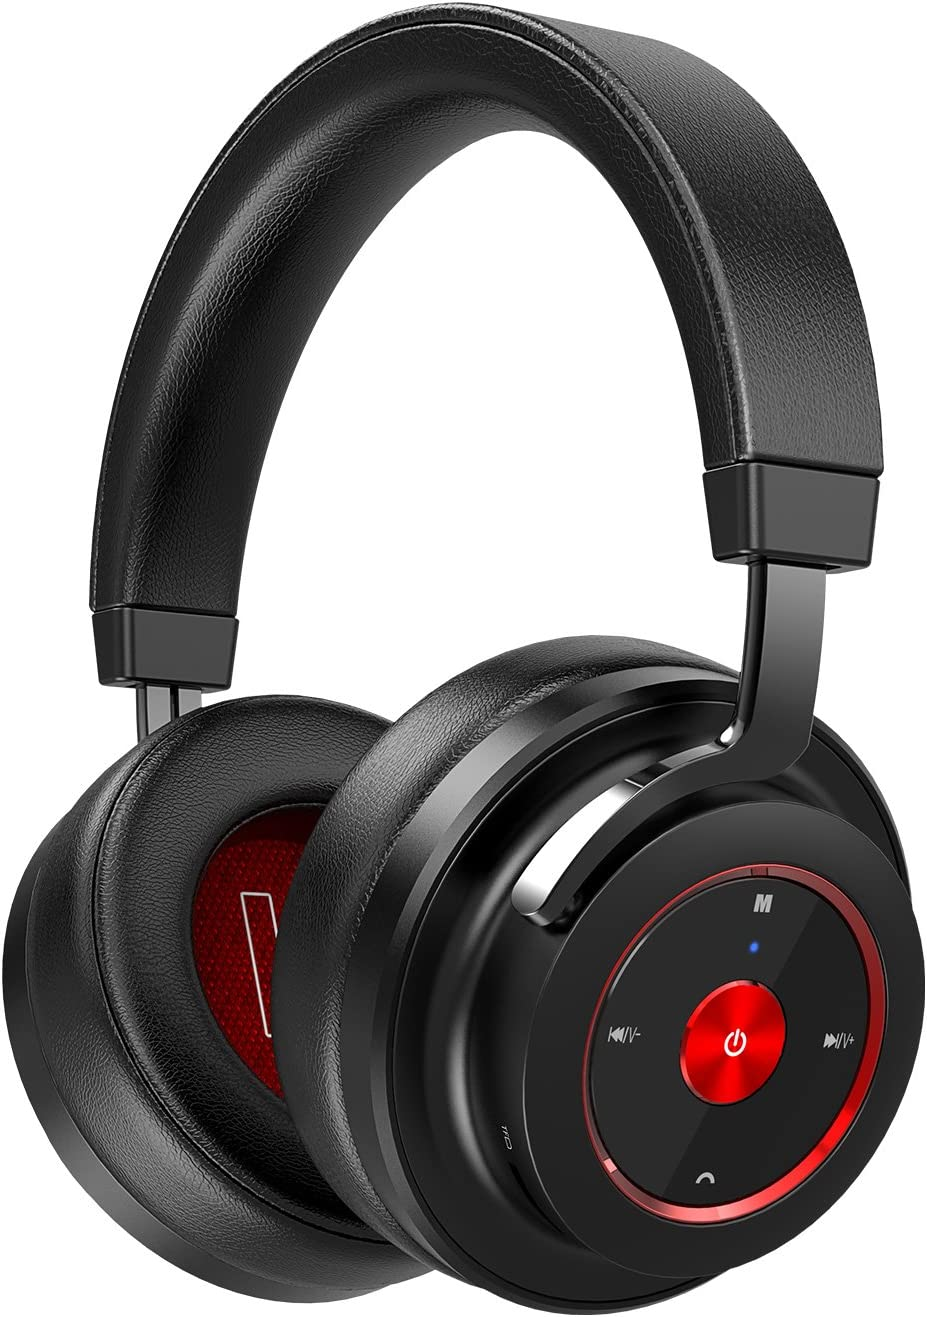 SADES Bluetooth Over-Ear Headphones Wireless Stereo Headset with Mic Hi-fi Sound Bluetooth 4.1 Low Latency for Mobile Phones/TV/Mac/PC(Black-Red)